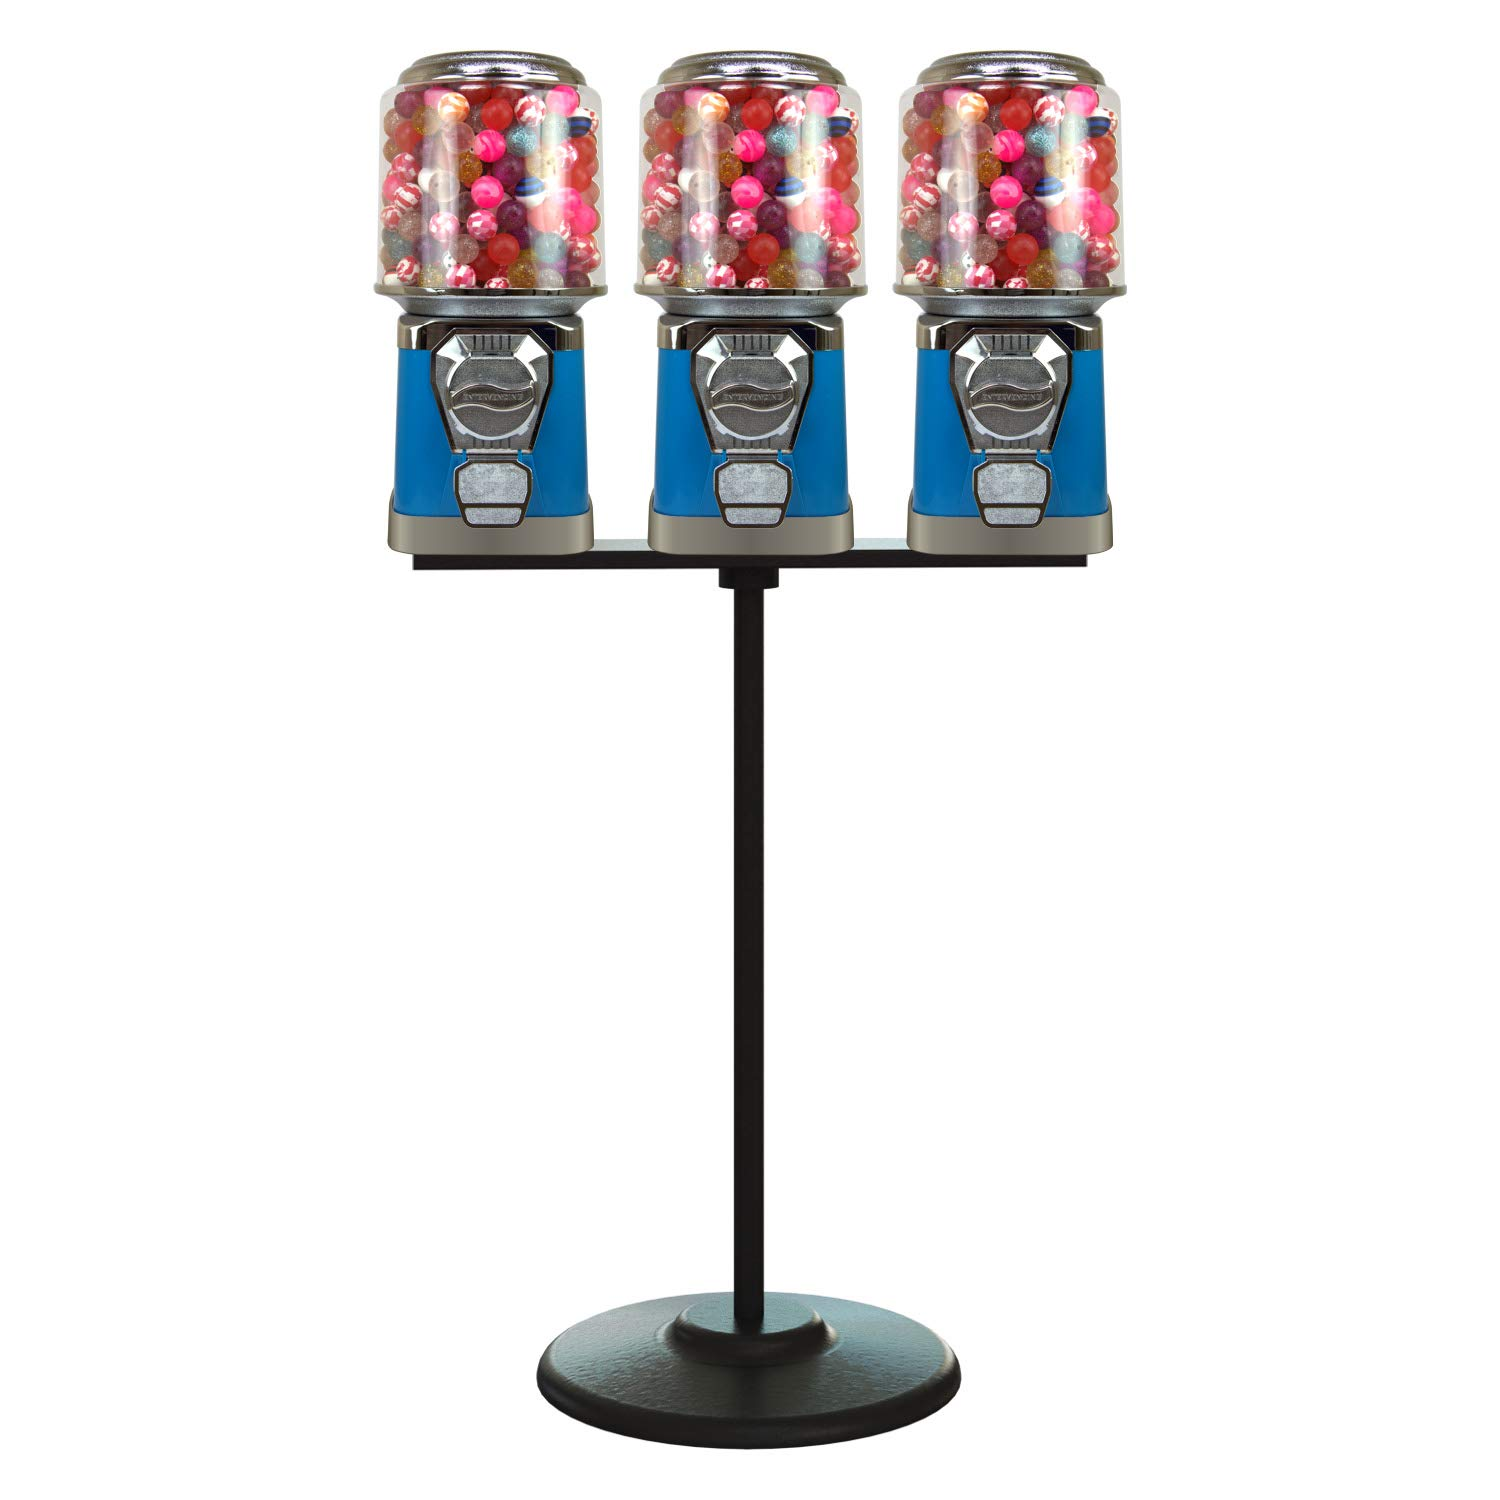 Gumball Ranking TOP5 Machine with Stand - 3 Regular discount w Machines Blue and Vending